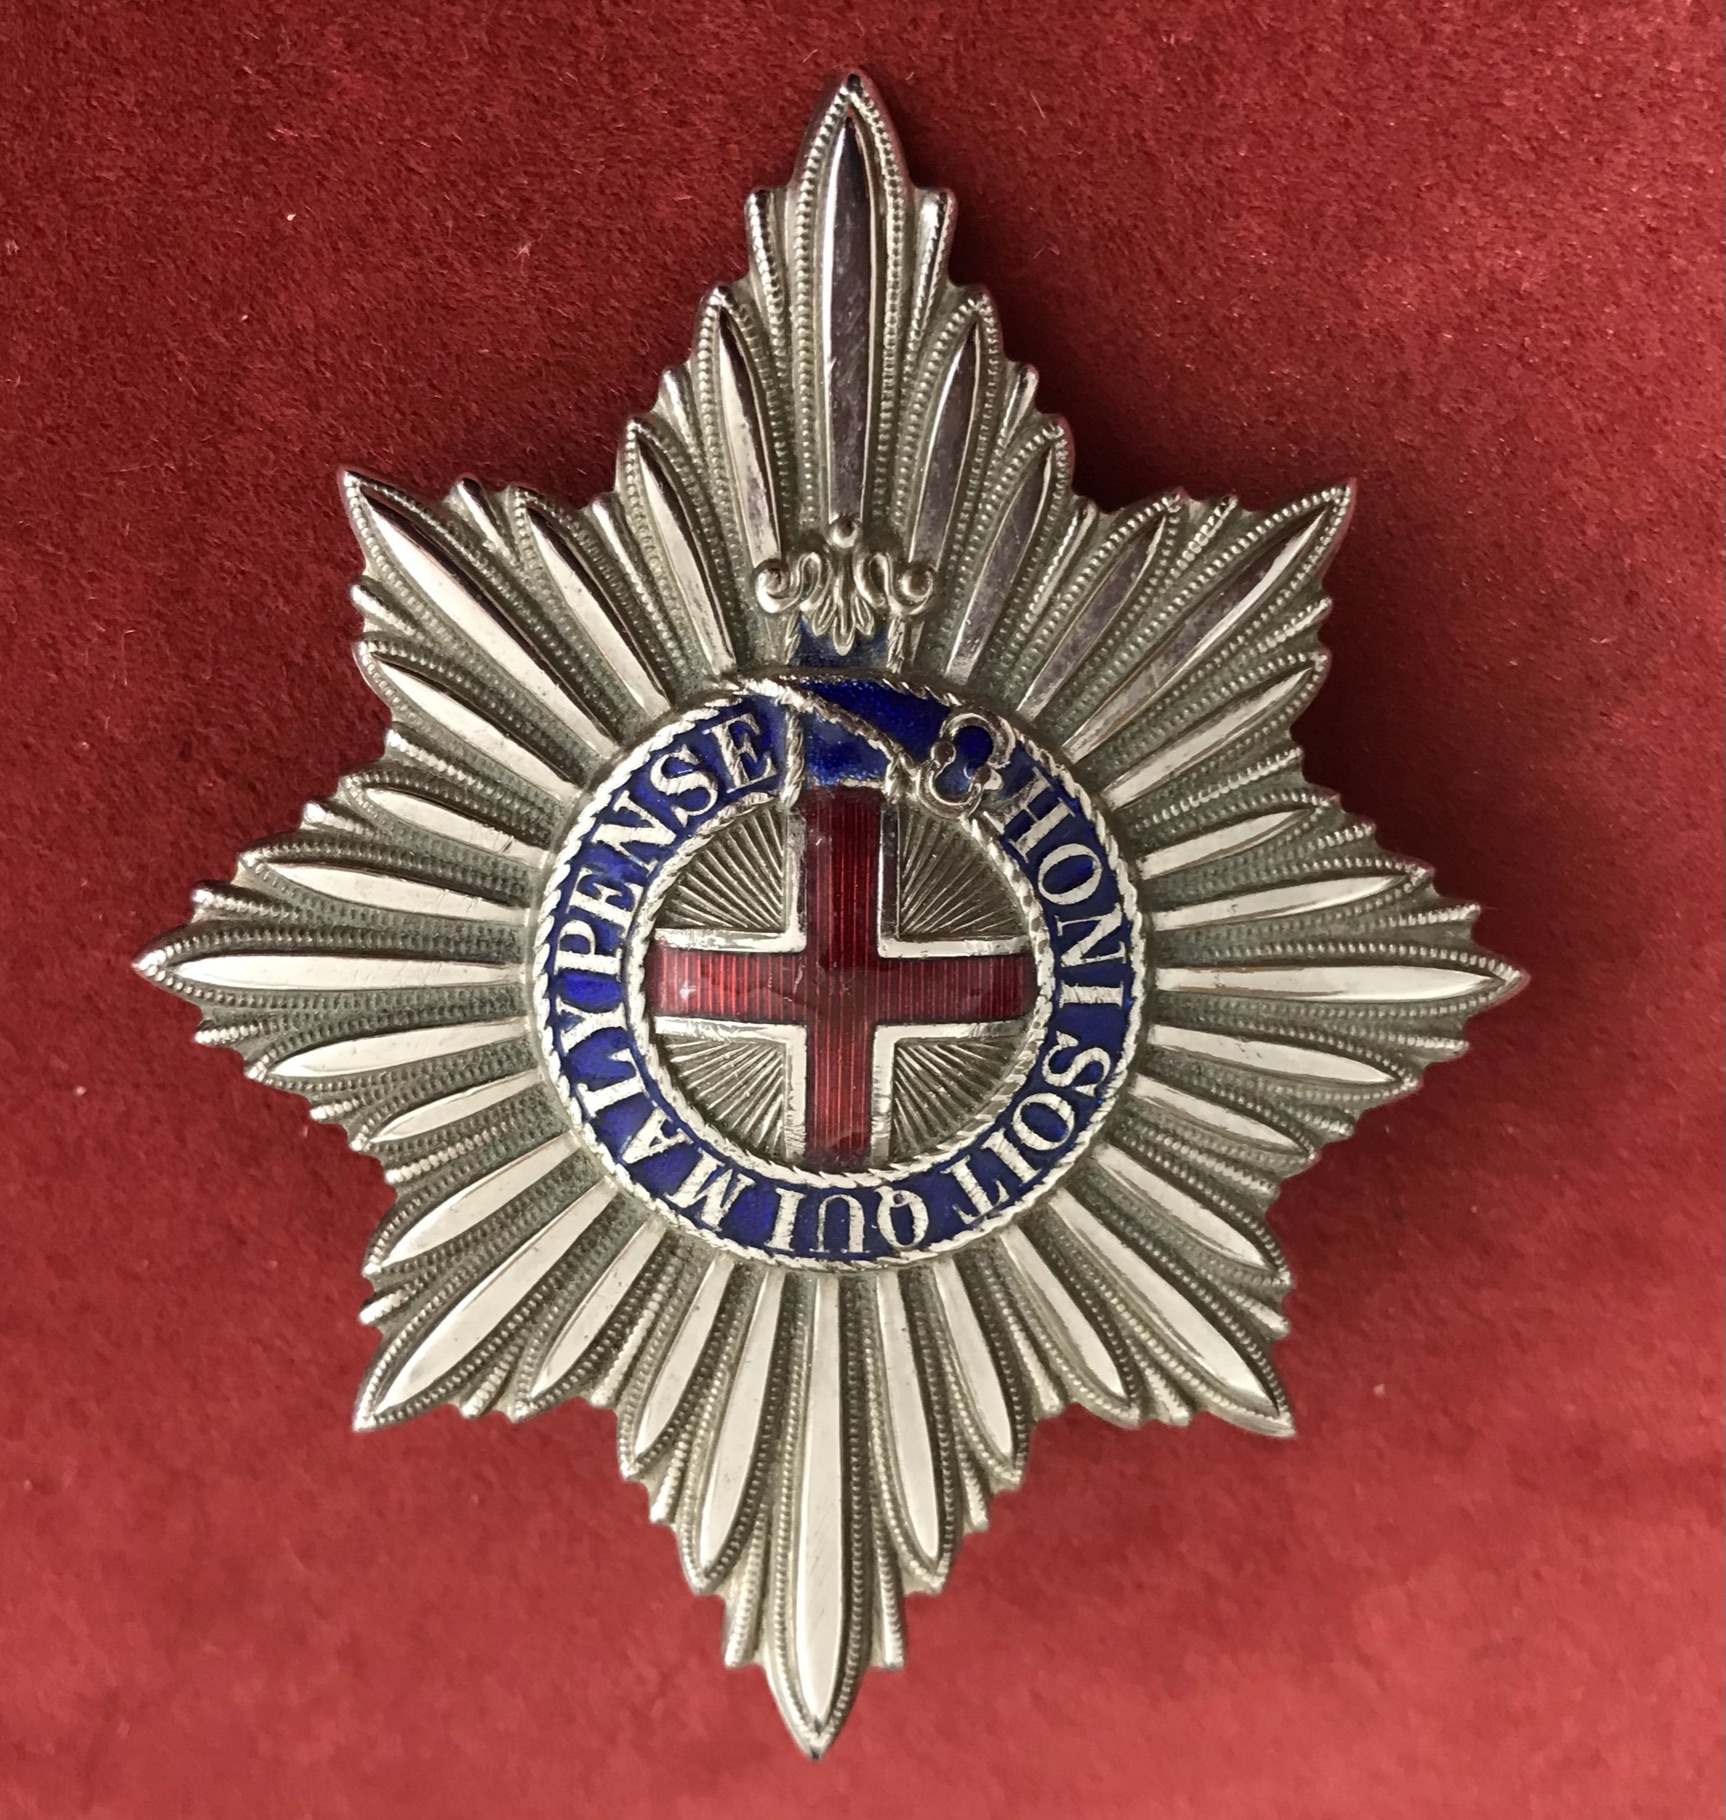 British Coldstream Guards Valise Badge (White-metal and enamel), two lugs. Possibly a later piece,